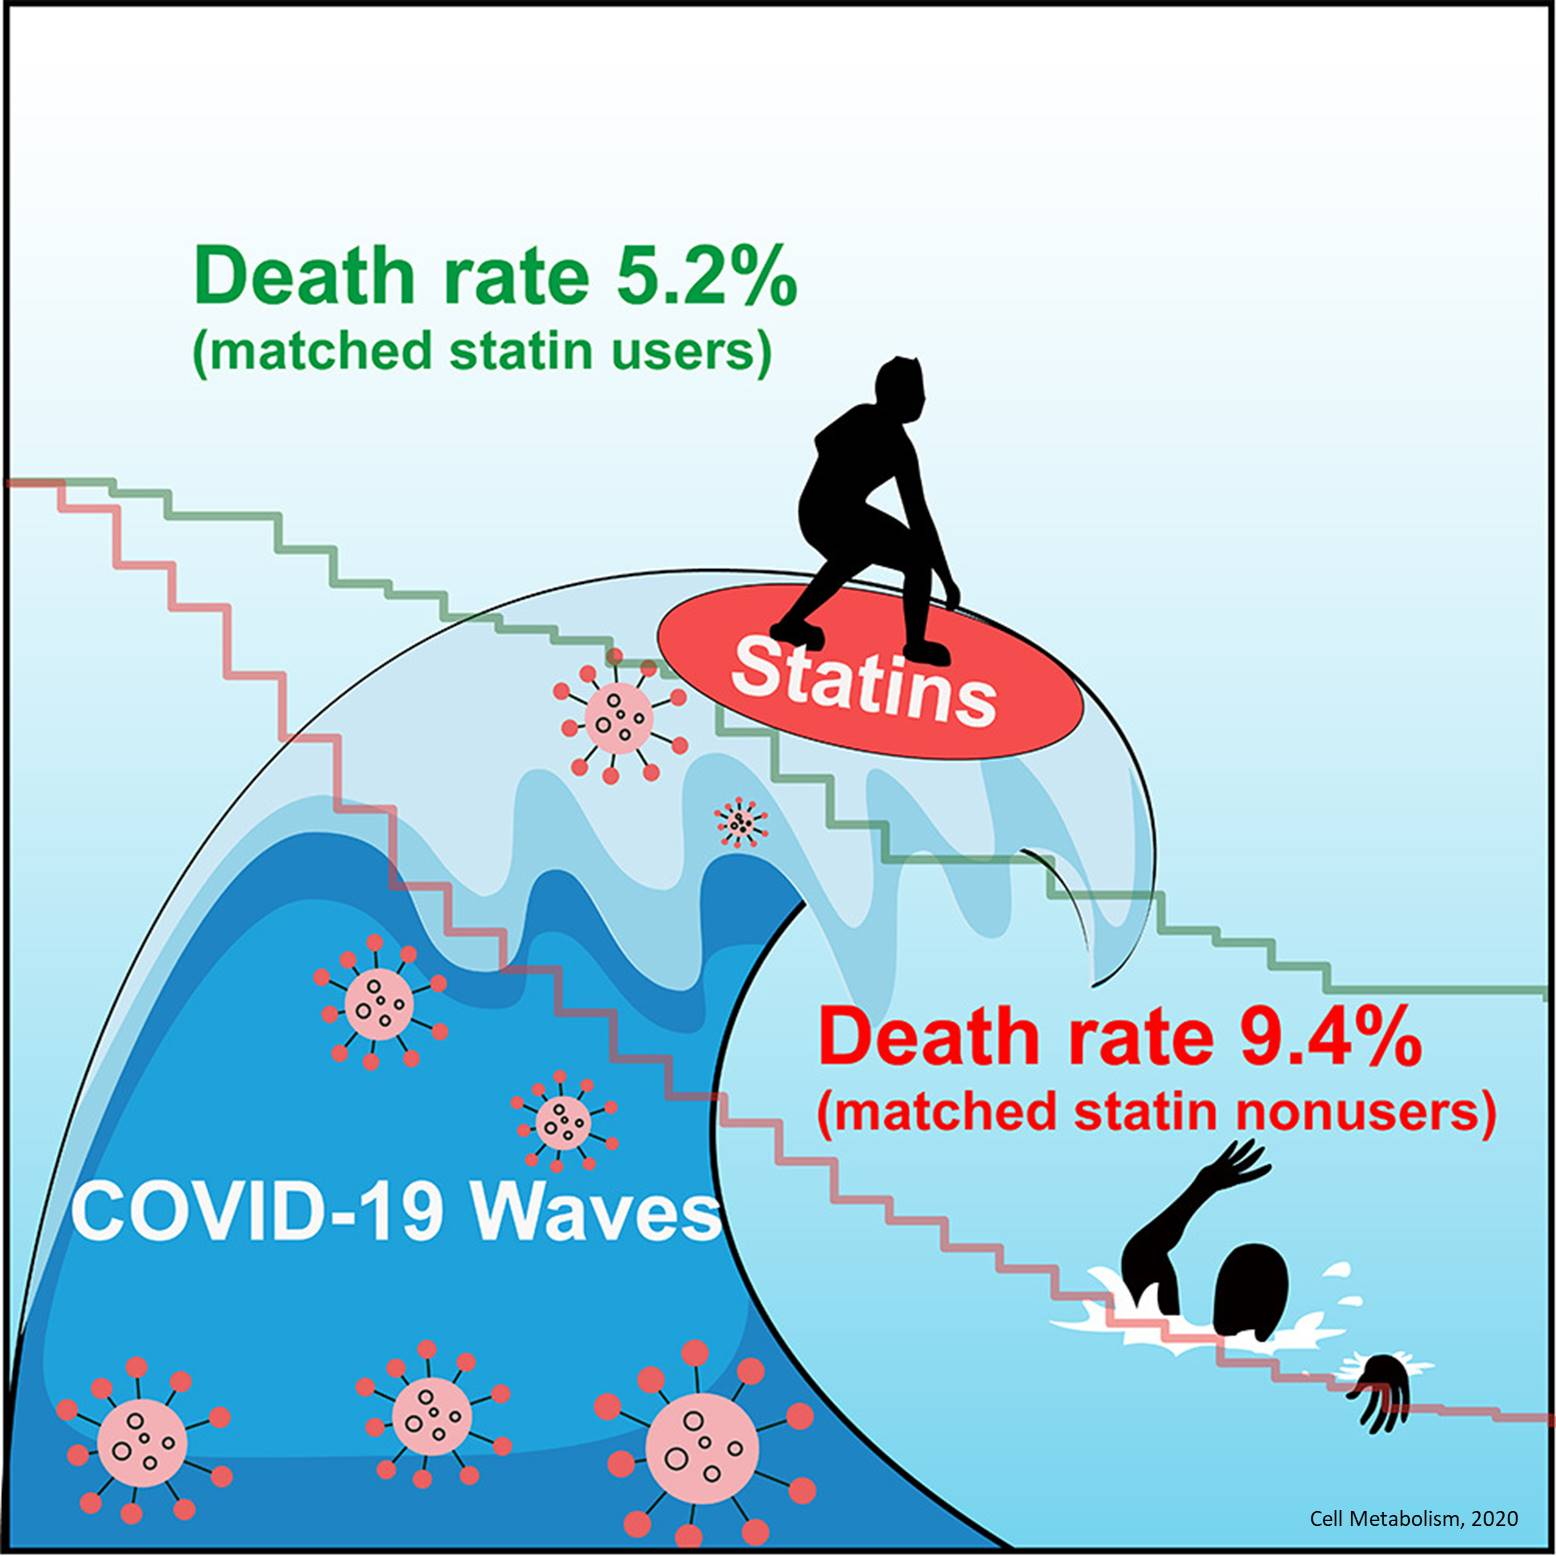 Statin use is linked to lower death rate in hospitalized COVID-19 patients